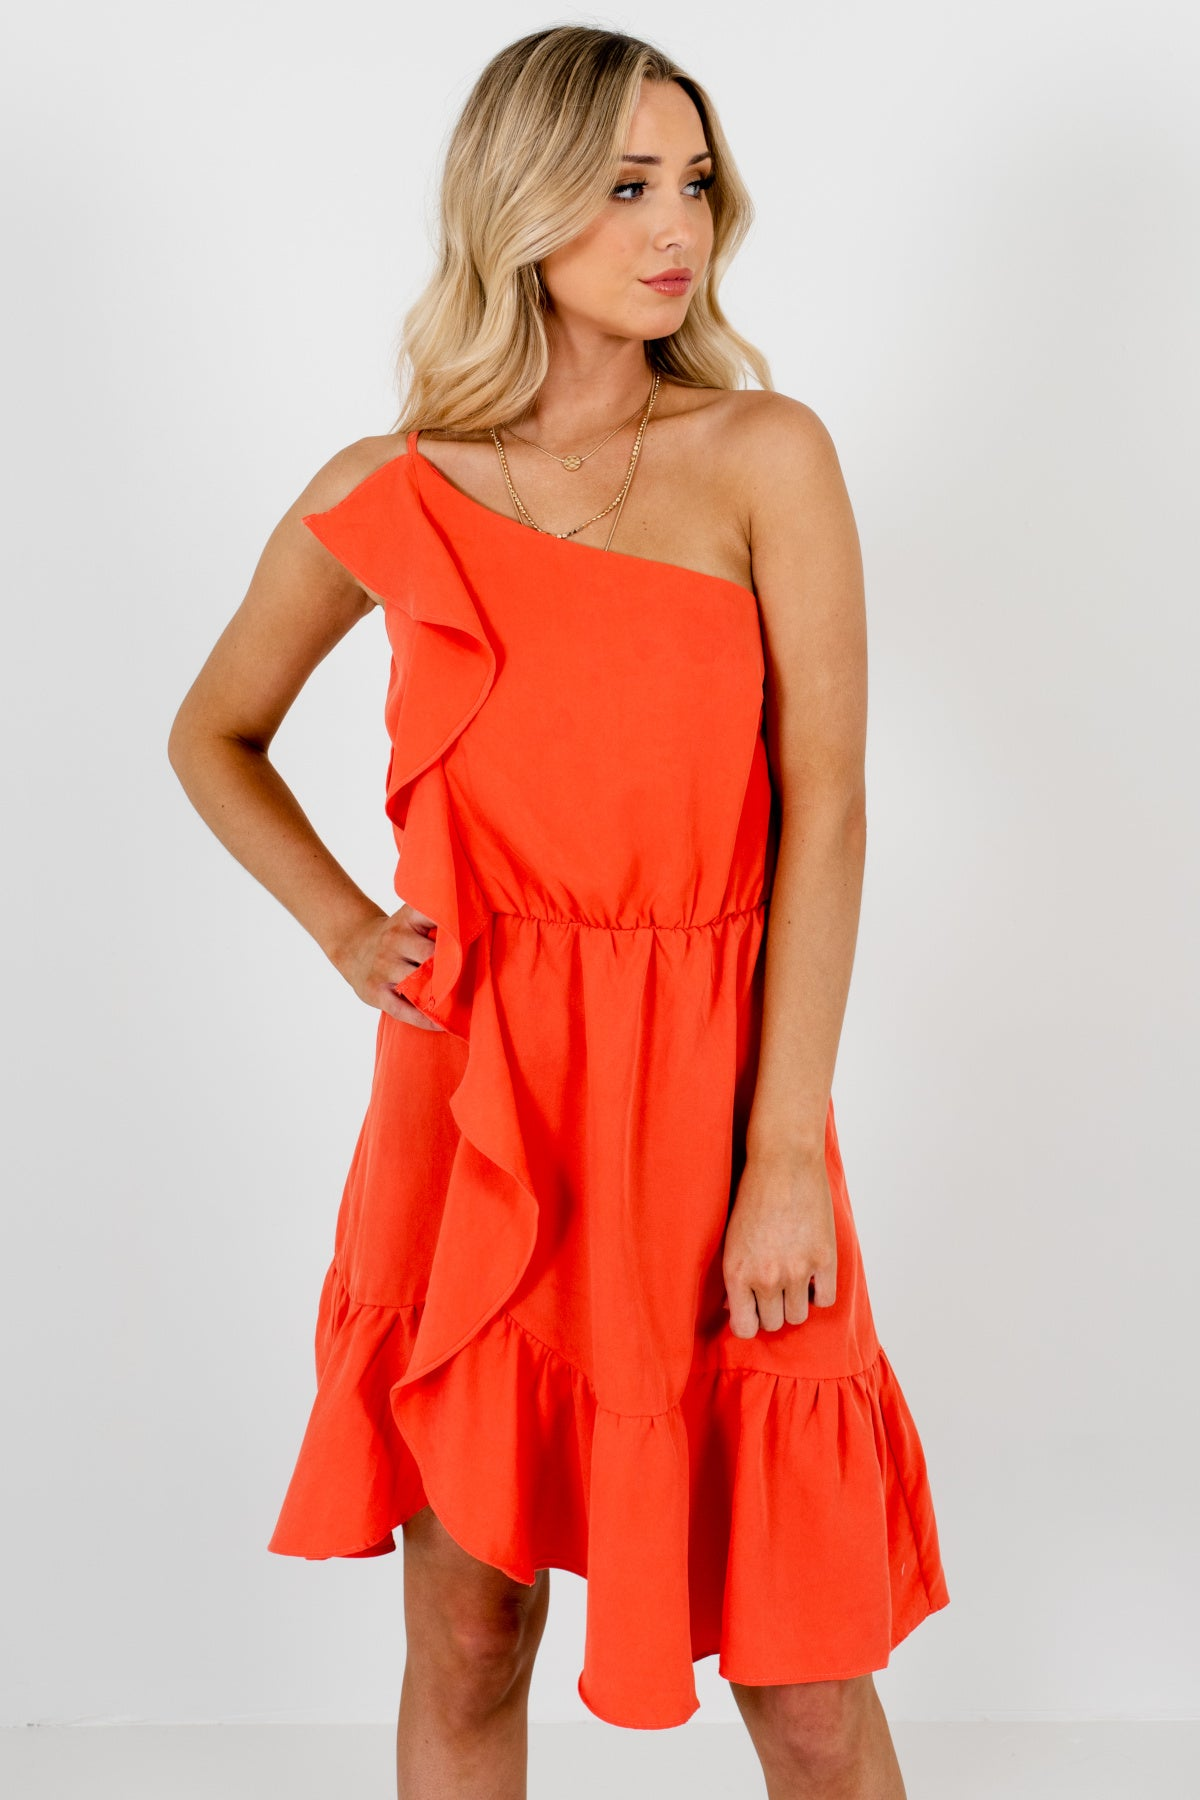 Coral Orange Ruffle Asymmetrical One Shoulder Mini Dresses for Women